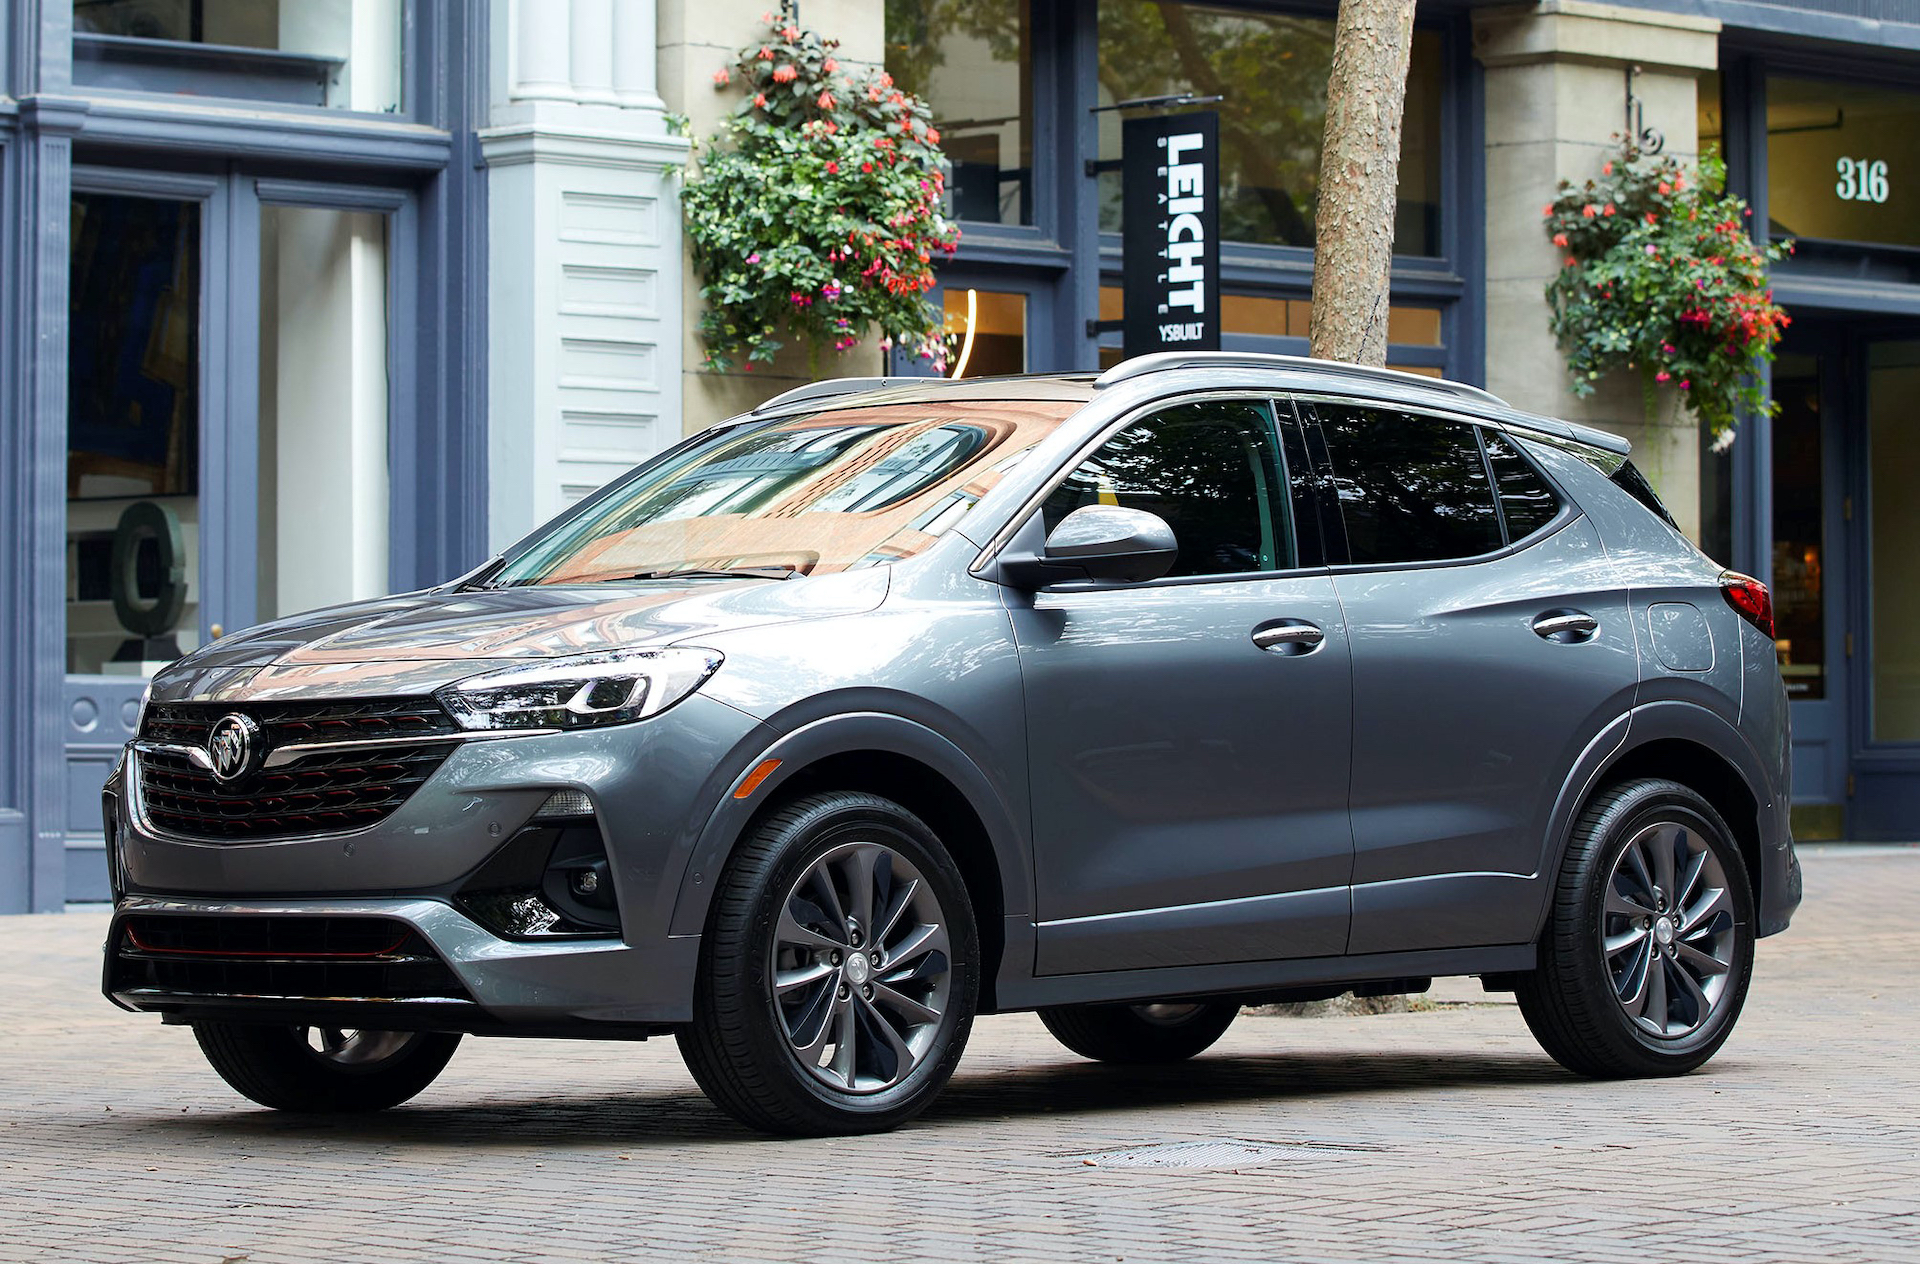 2021 Buick Encore Review, Ratings, Specs, Prices, And Photos New 2021 Buick Encore Essence Engine, Awd, Msrp